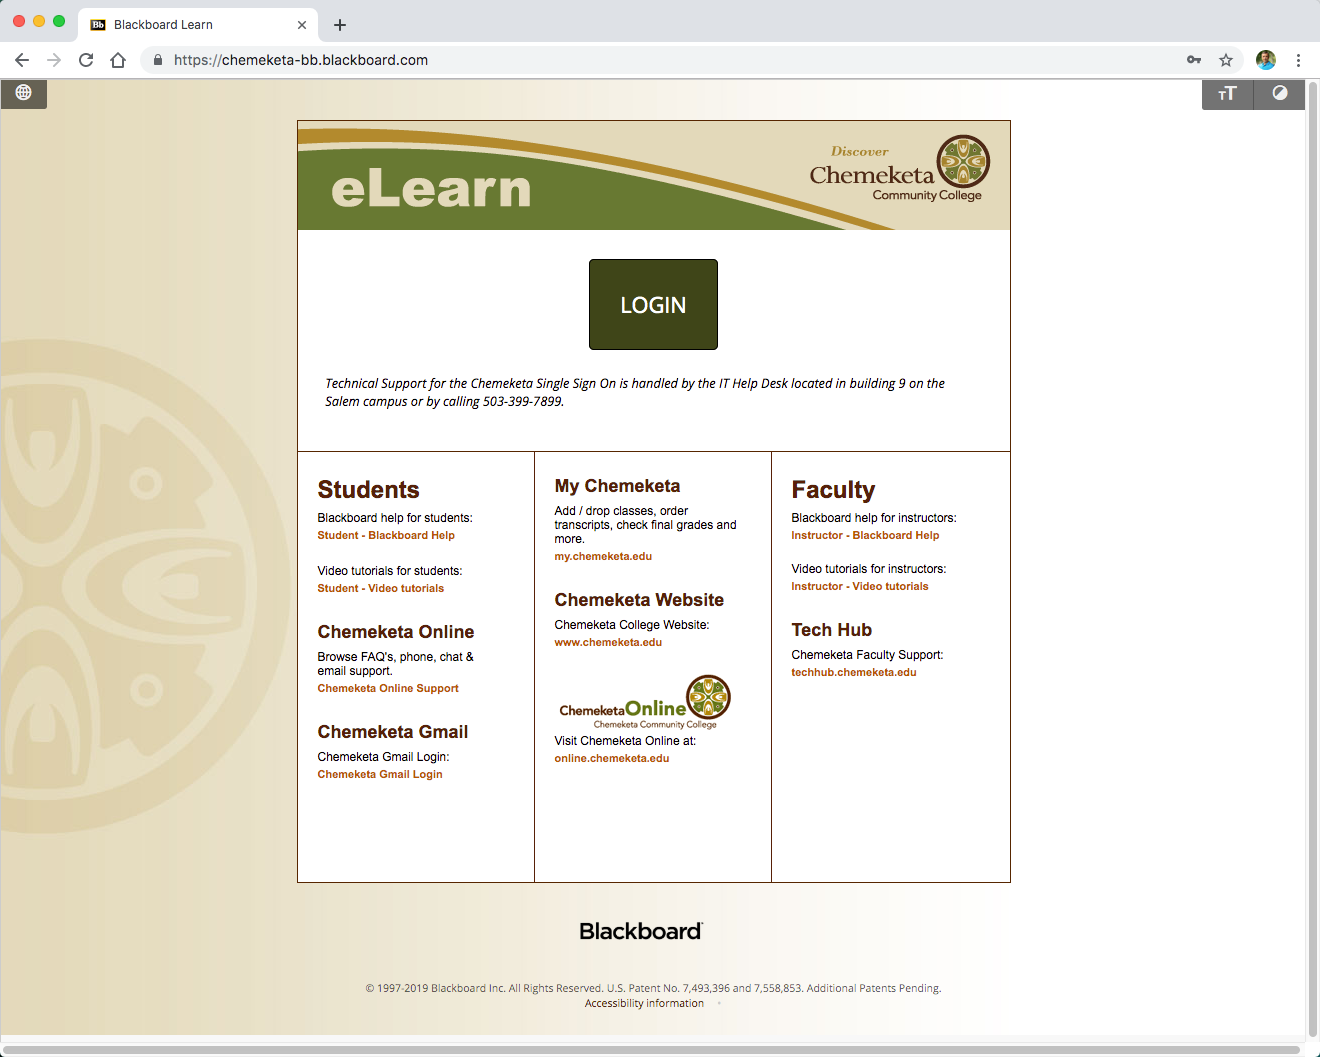 Screenshot showing the eLearn login webpage